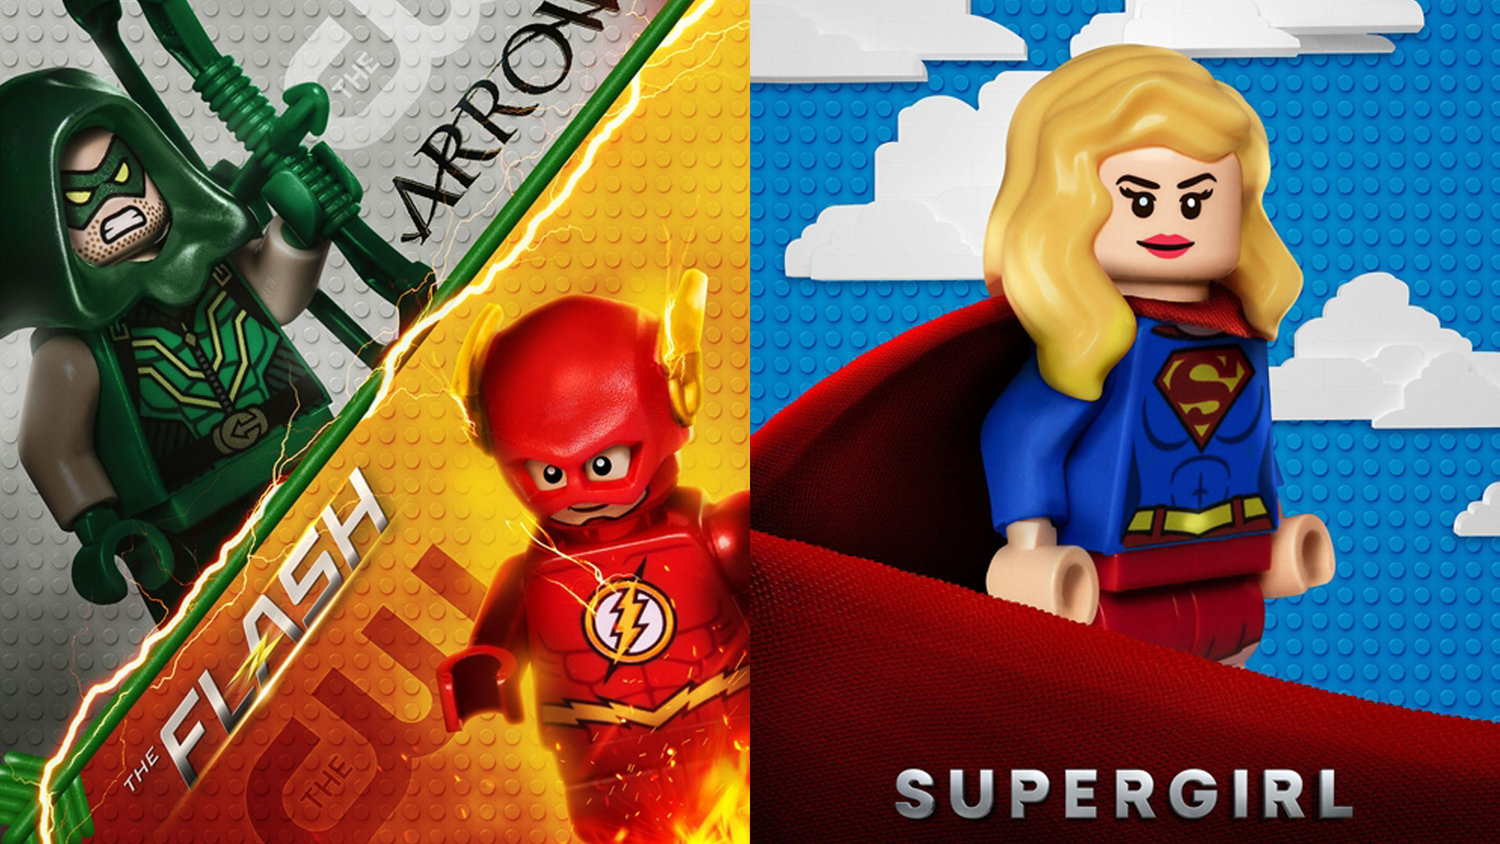 THE FLASH, SUPERGIRL, GOTHAM, and More Get Bricked Out to Promote THE LEGO BATMAN MOVIE